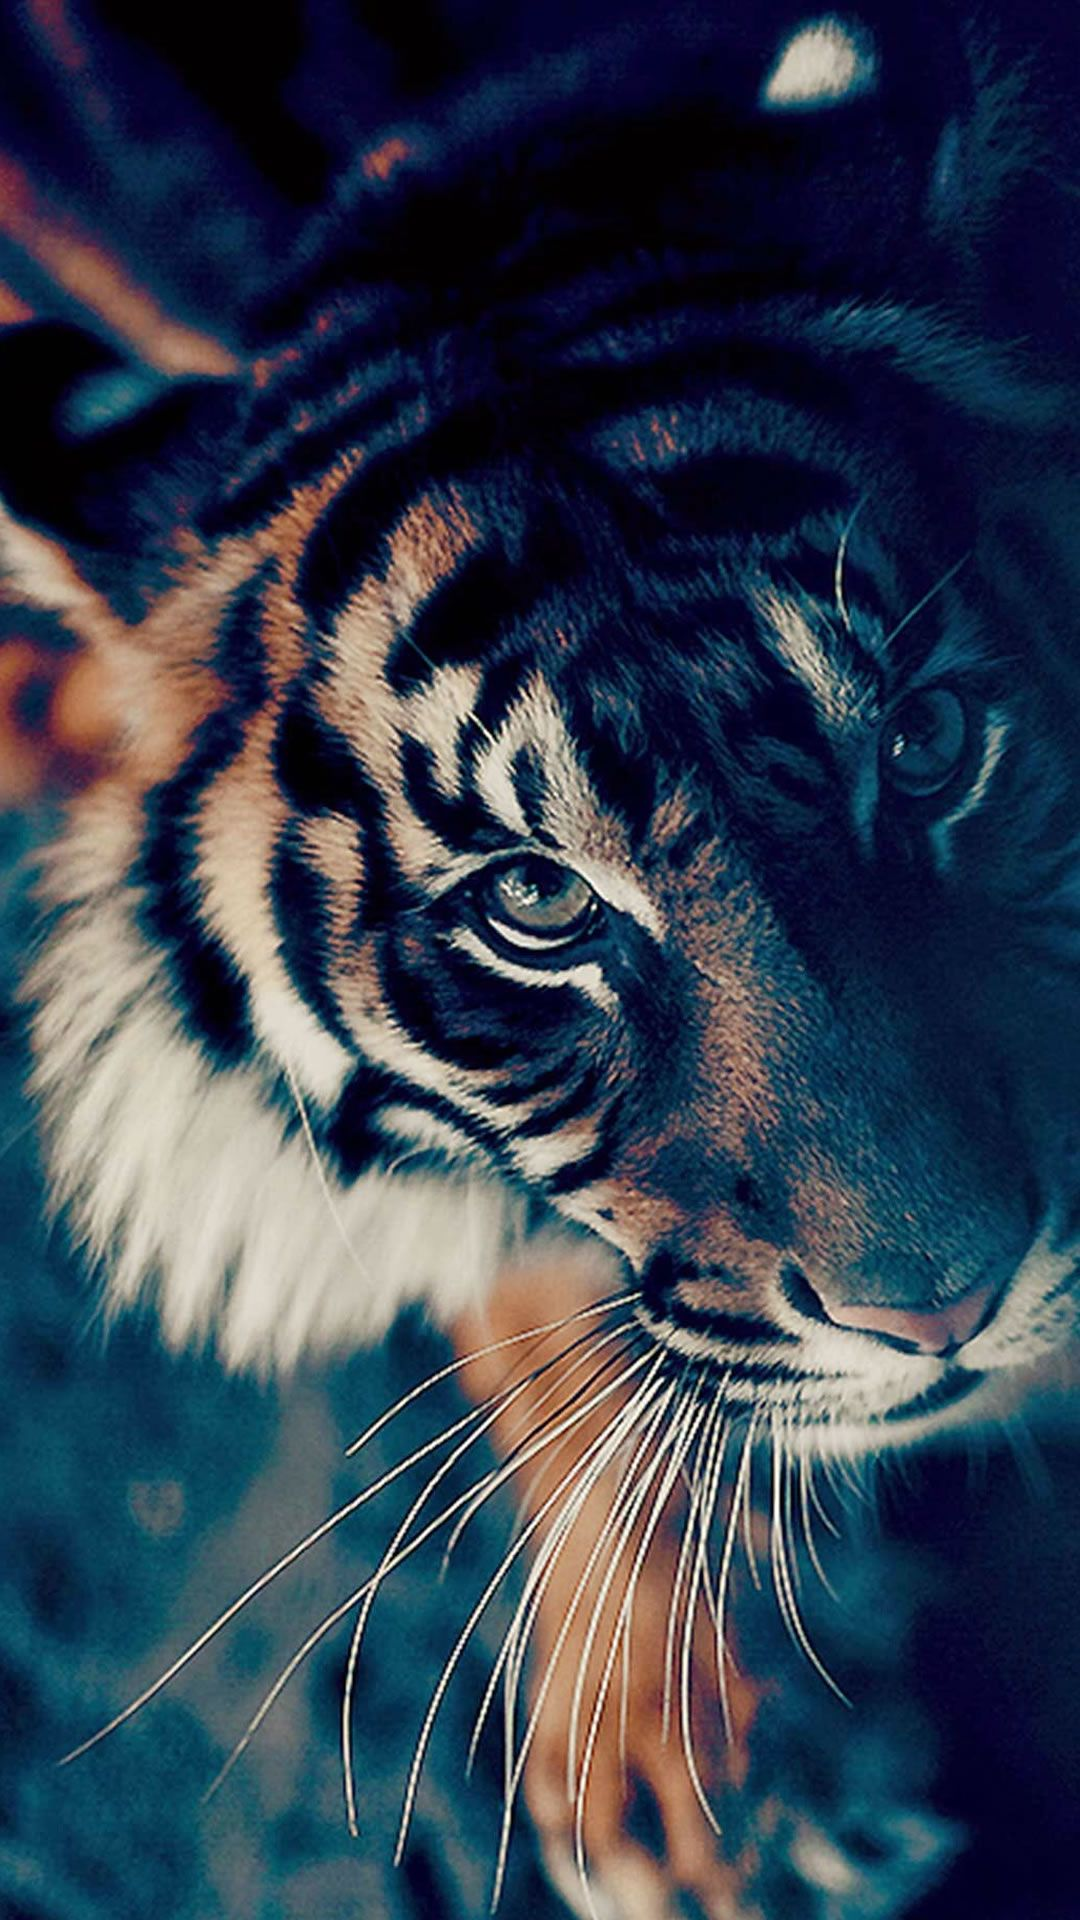 bengal tiger closeup iphone 6 wallpaper | tattoo | pinterest